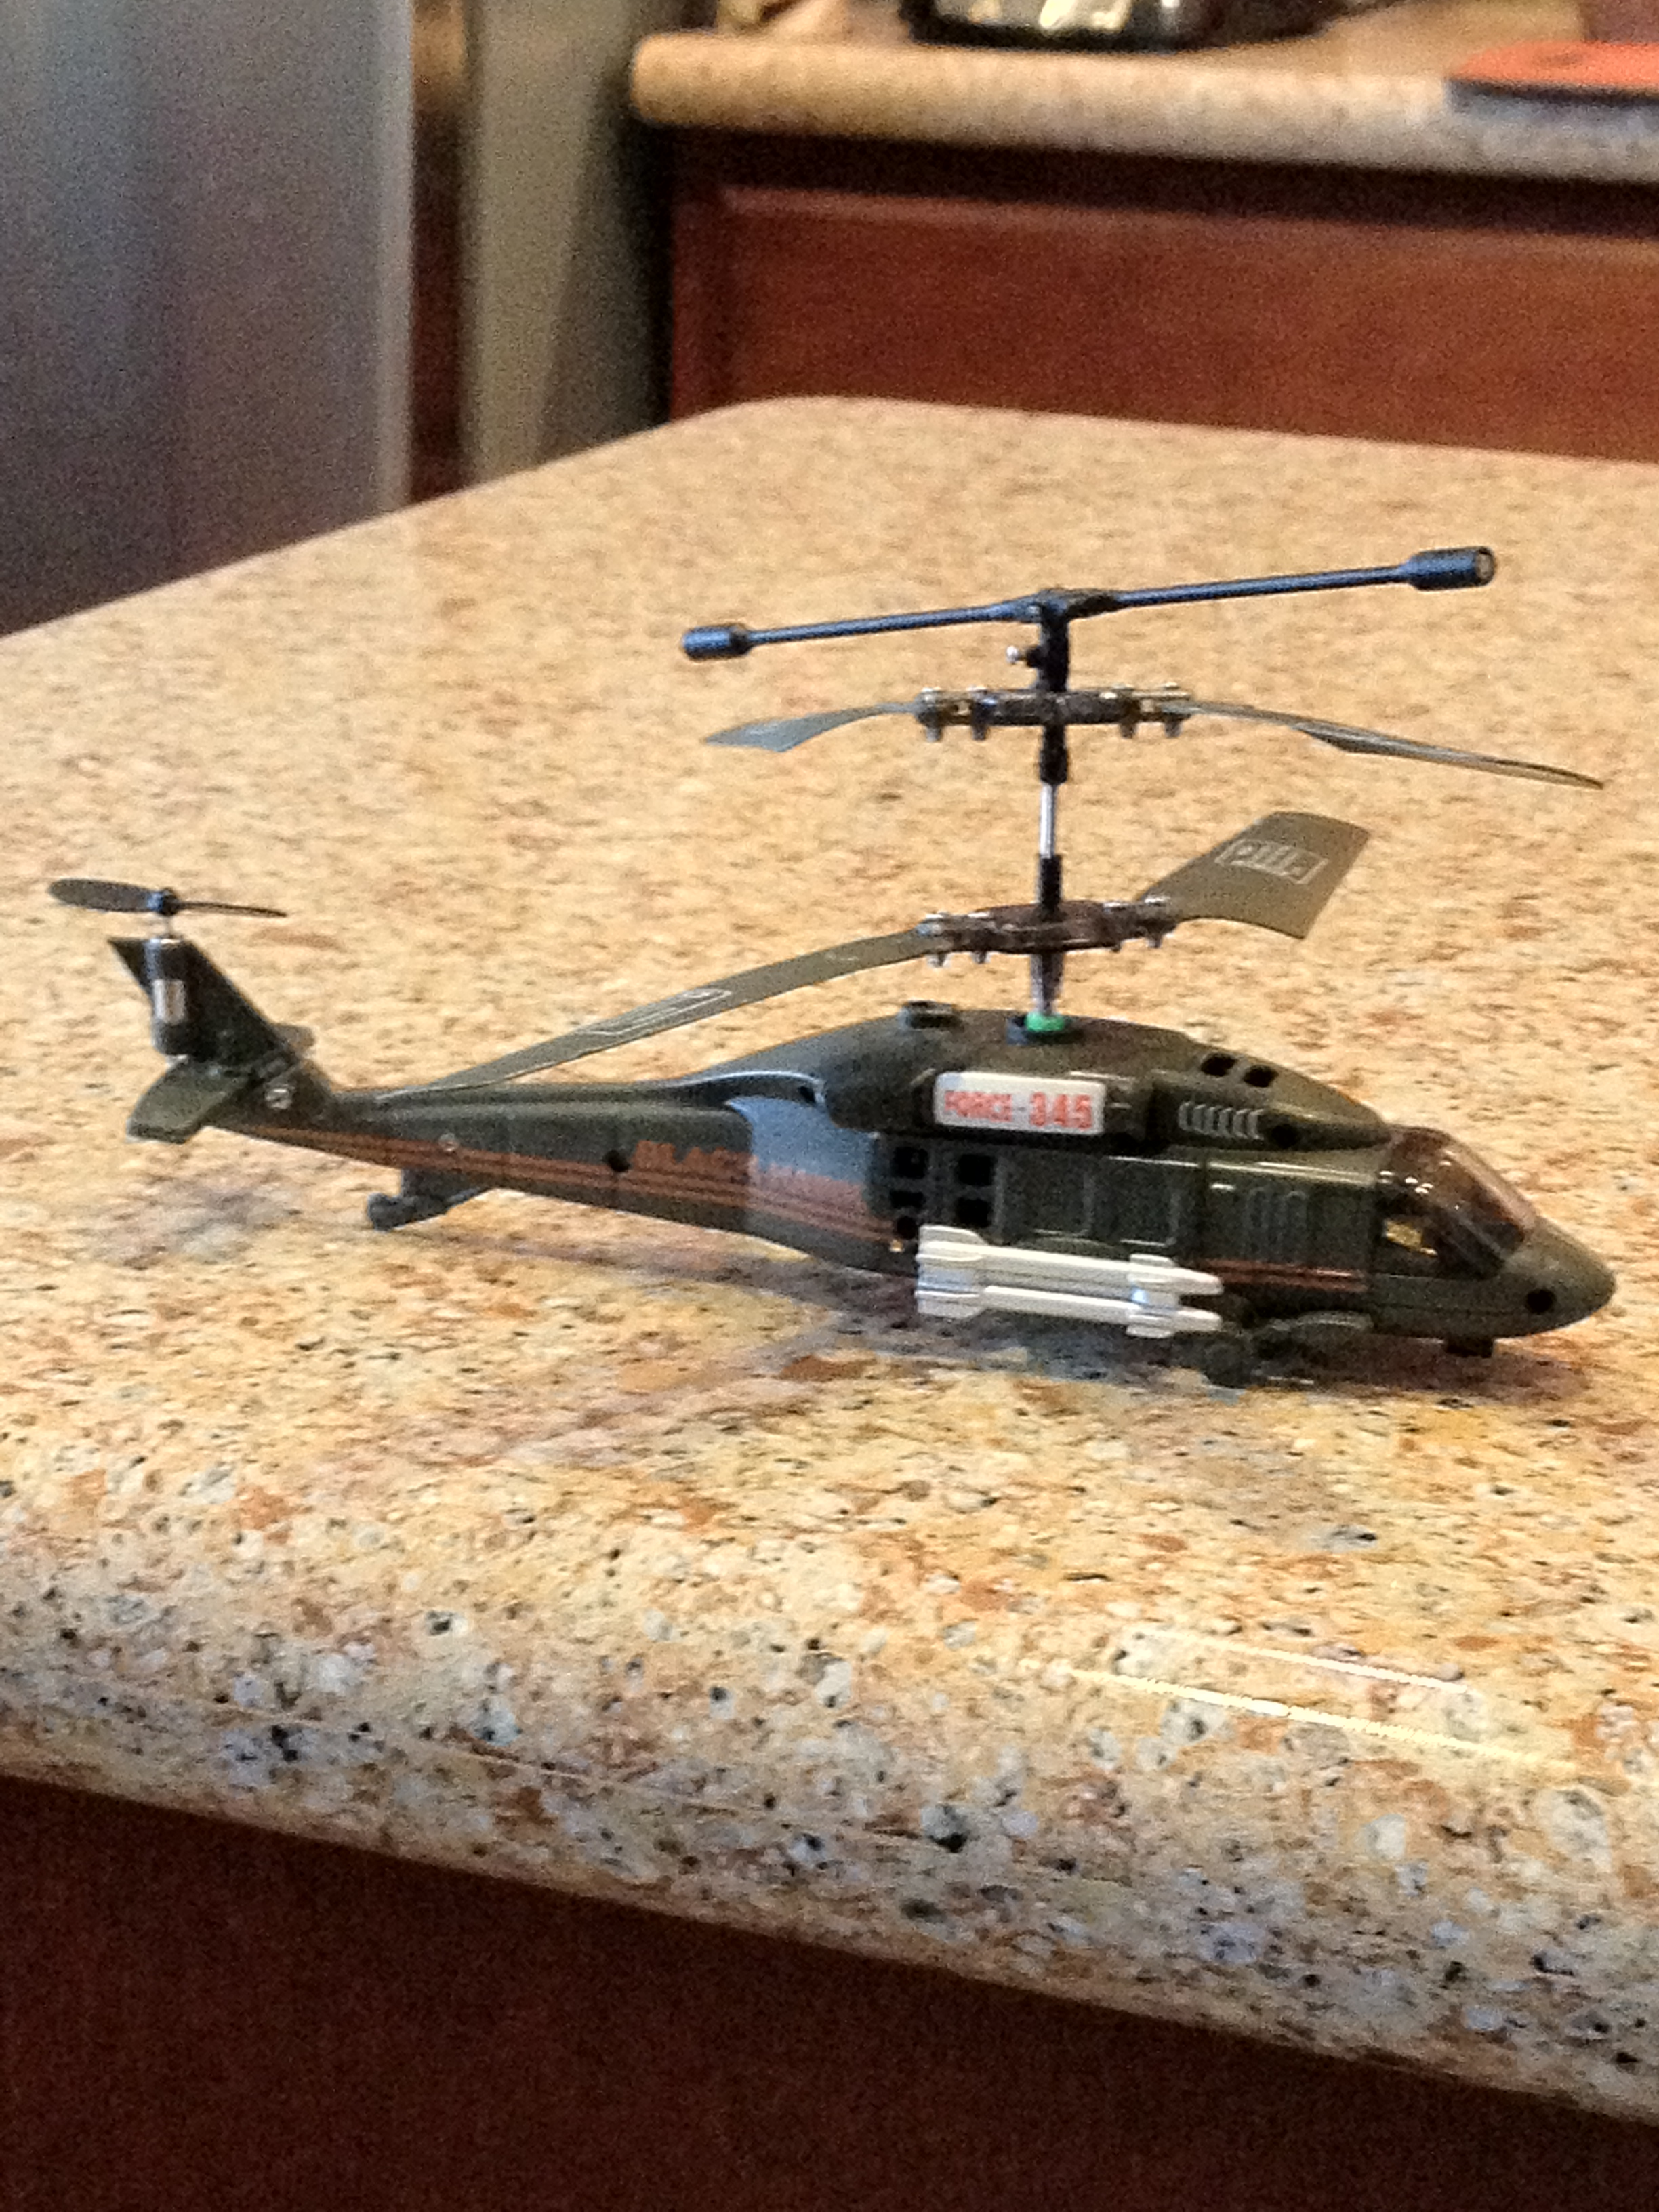 Flying a 3 Channel RC (gyro) Helicopter : 6 Steps (with Pictures)